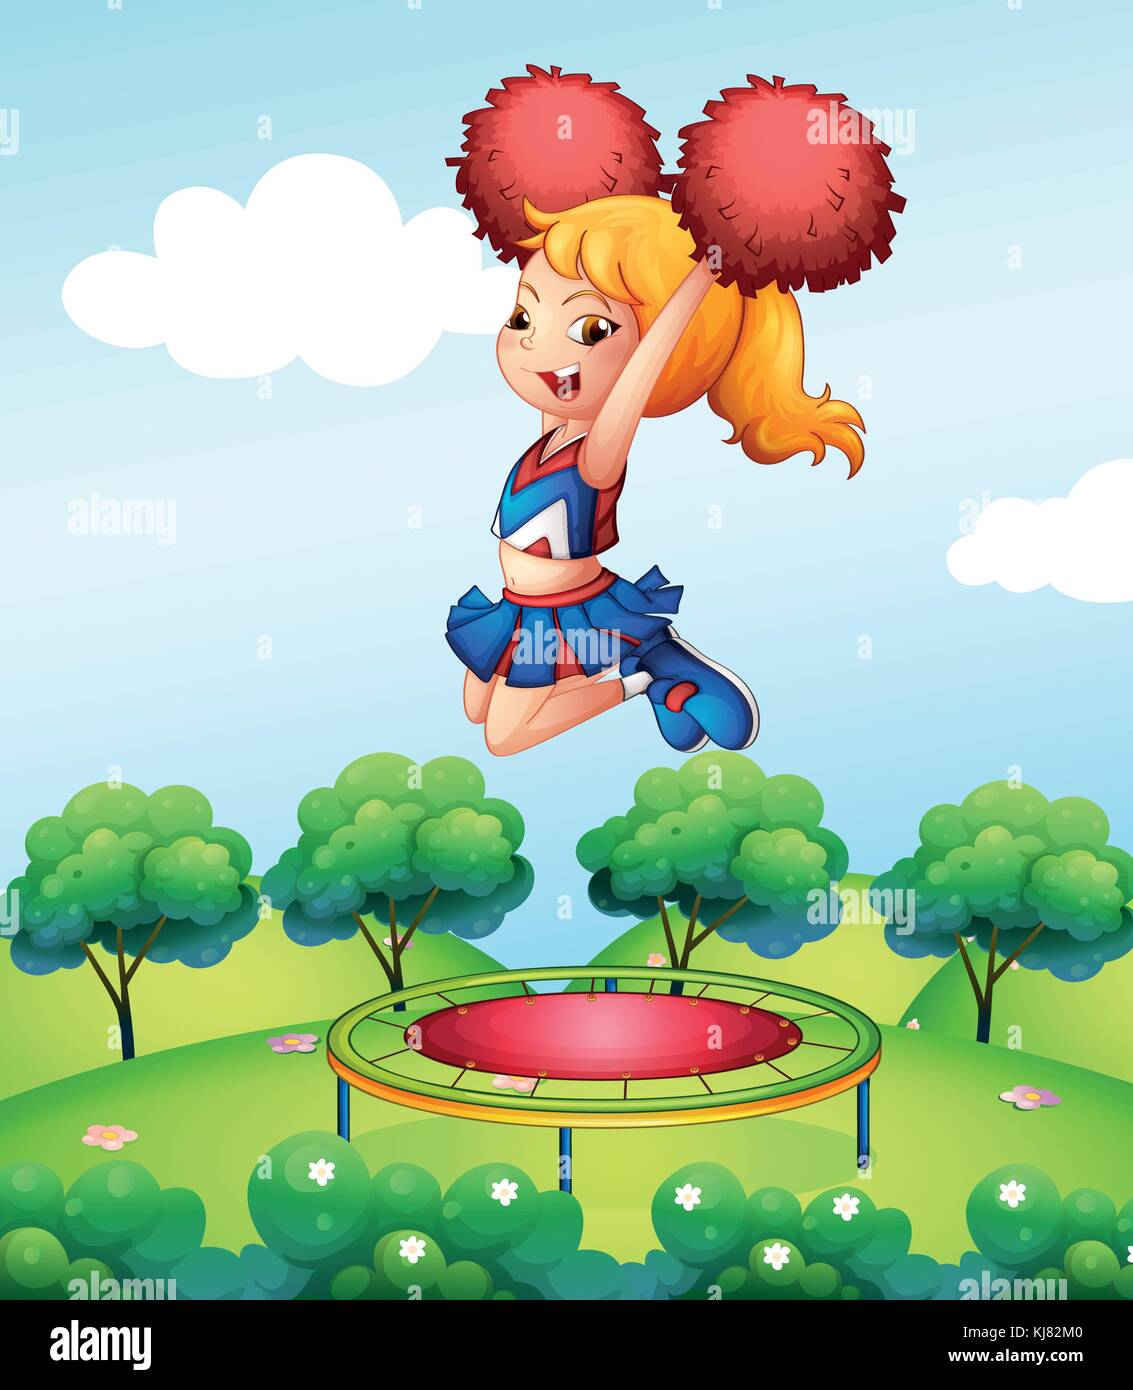 Illustration of a cheerdancer holding her red pompoms above the trampoline - Stock Vector